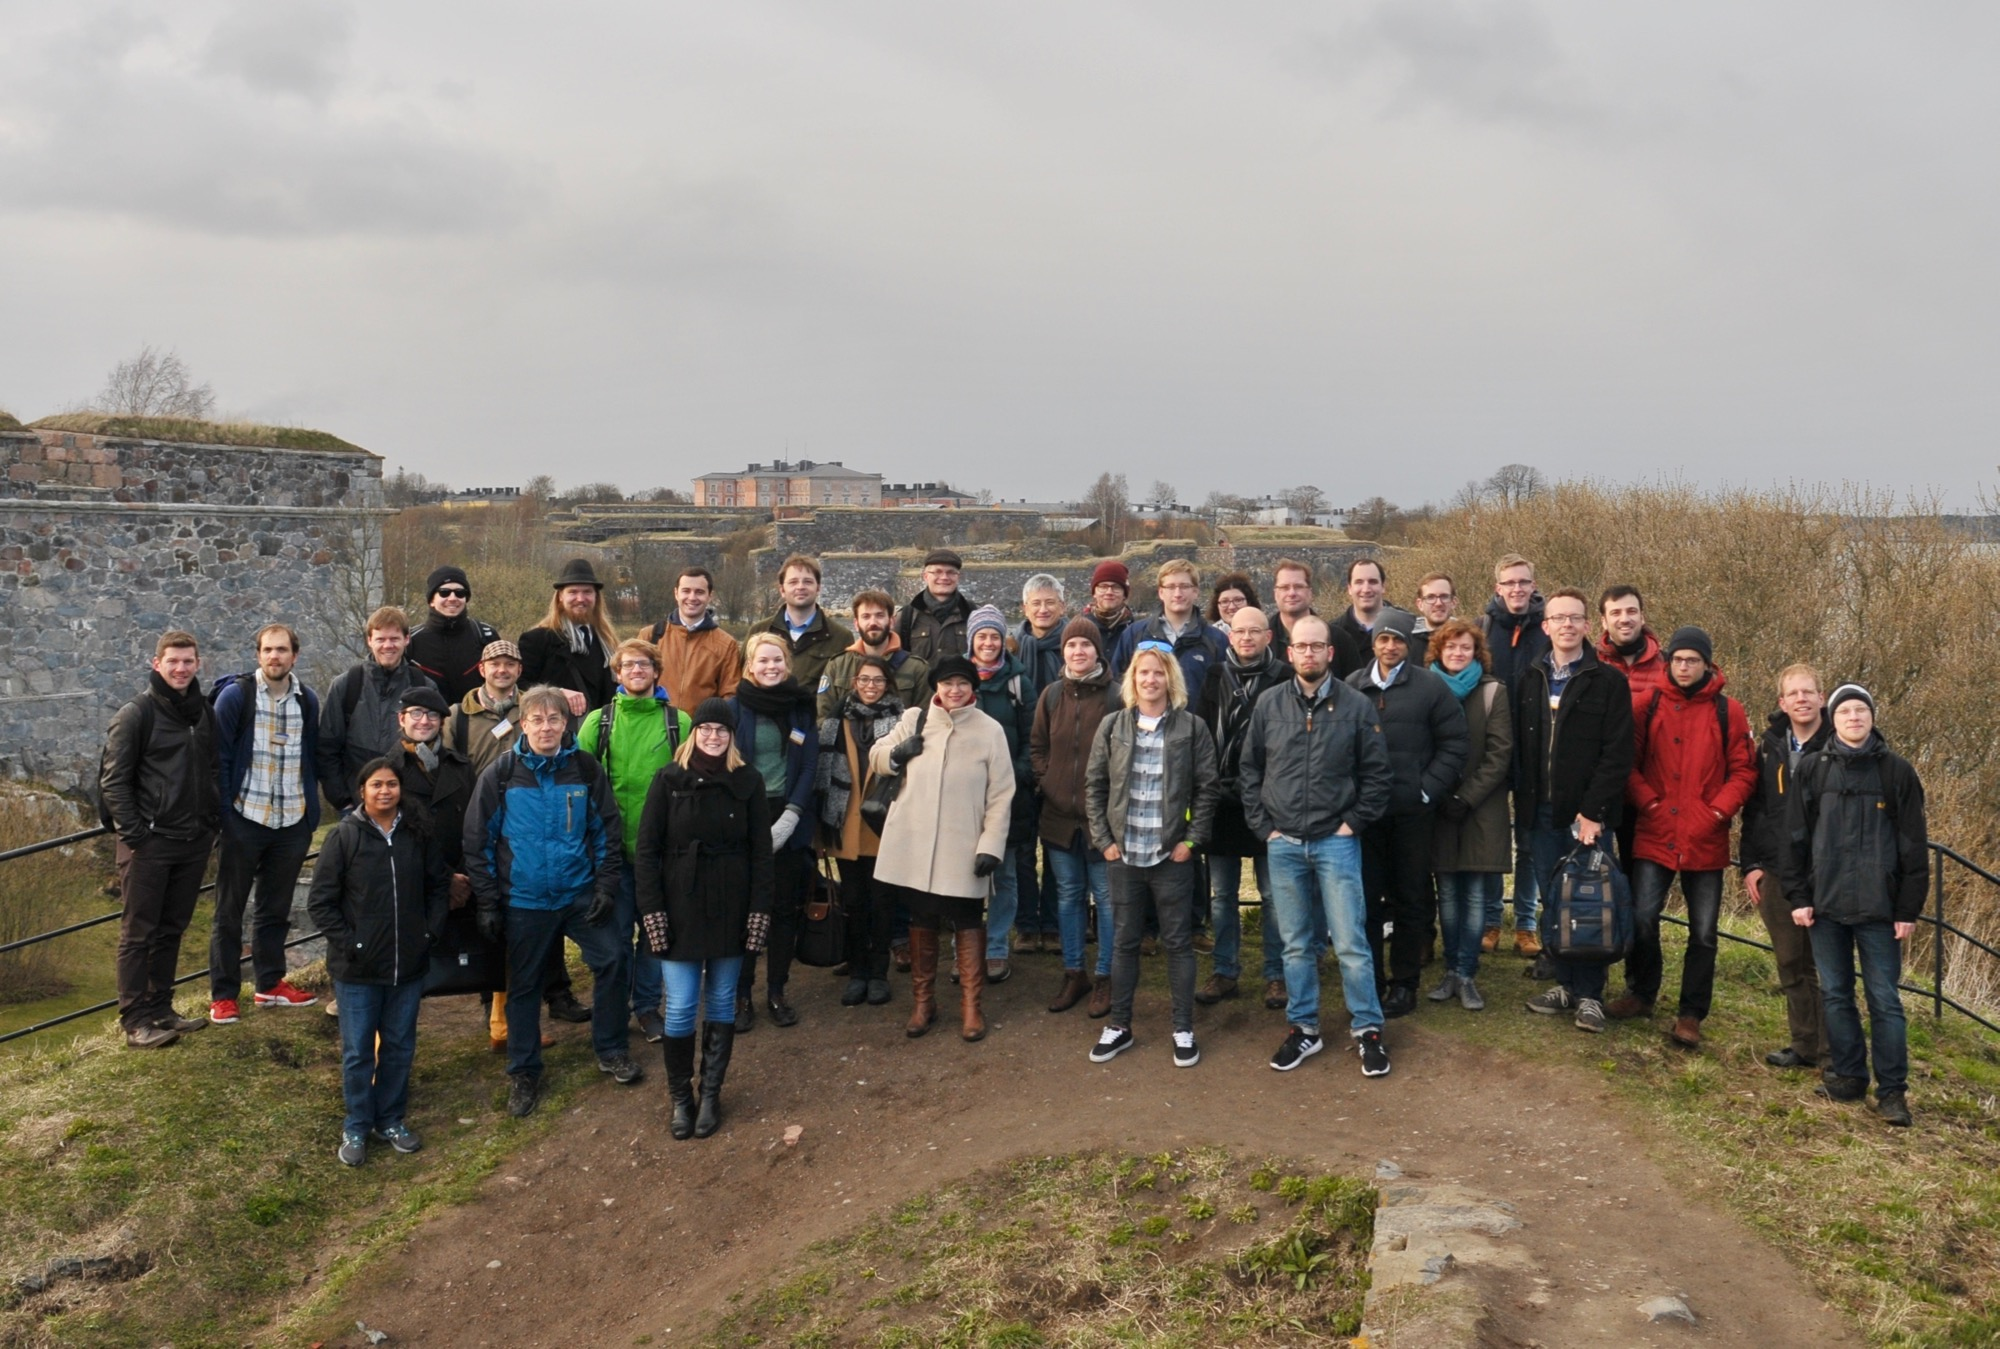 JetMET conference photo at Suomenlinna fortifications